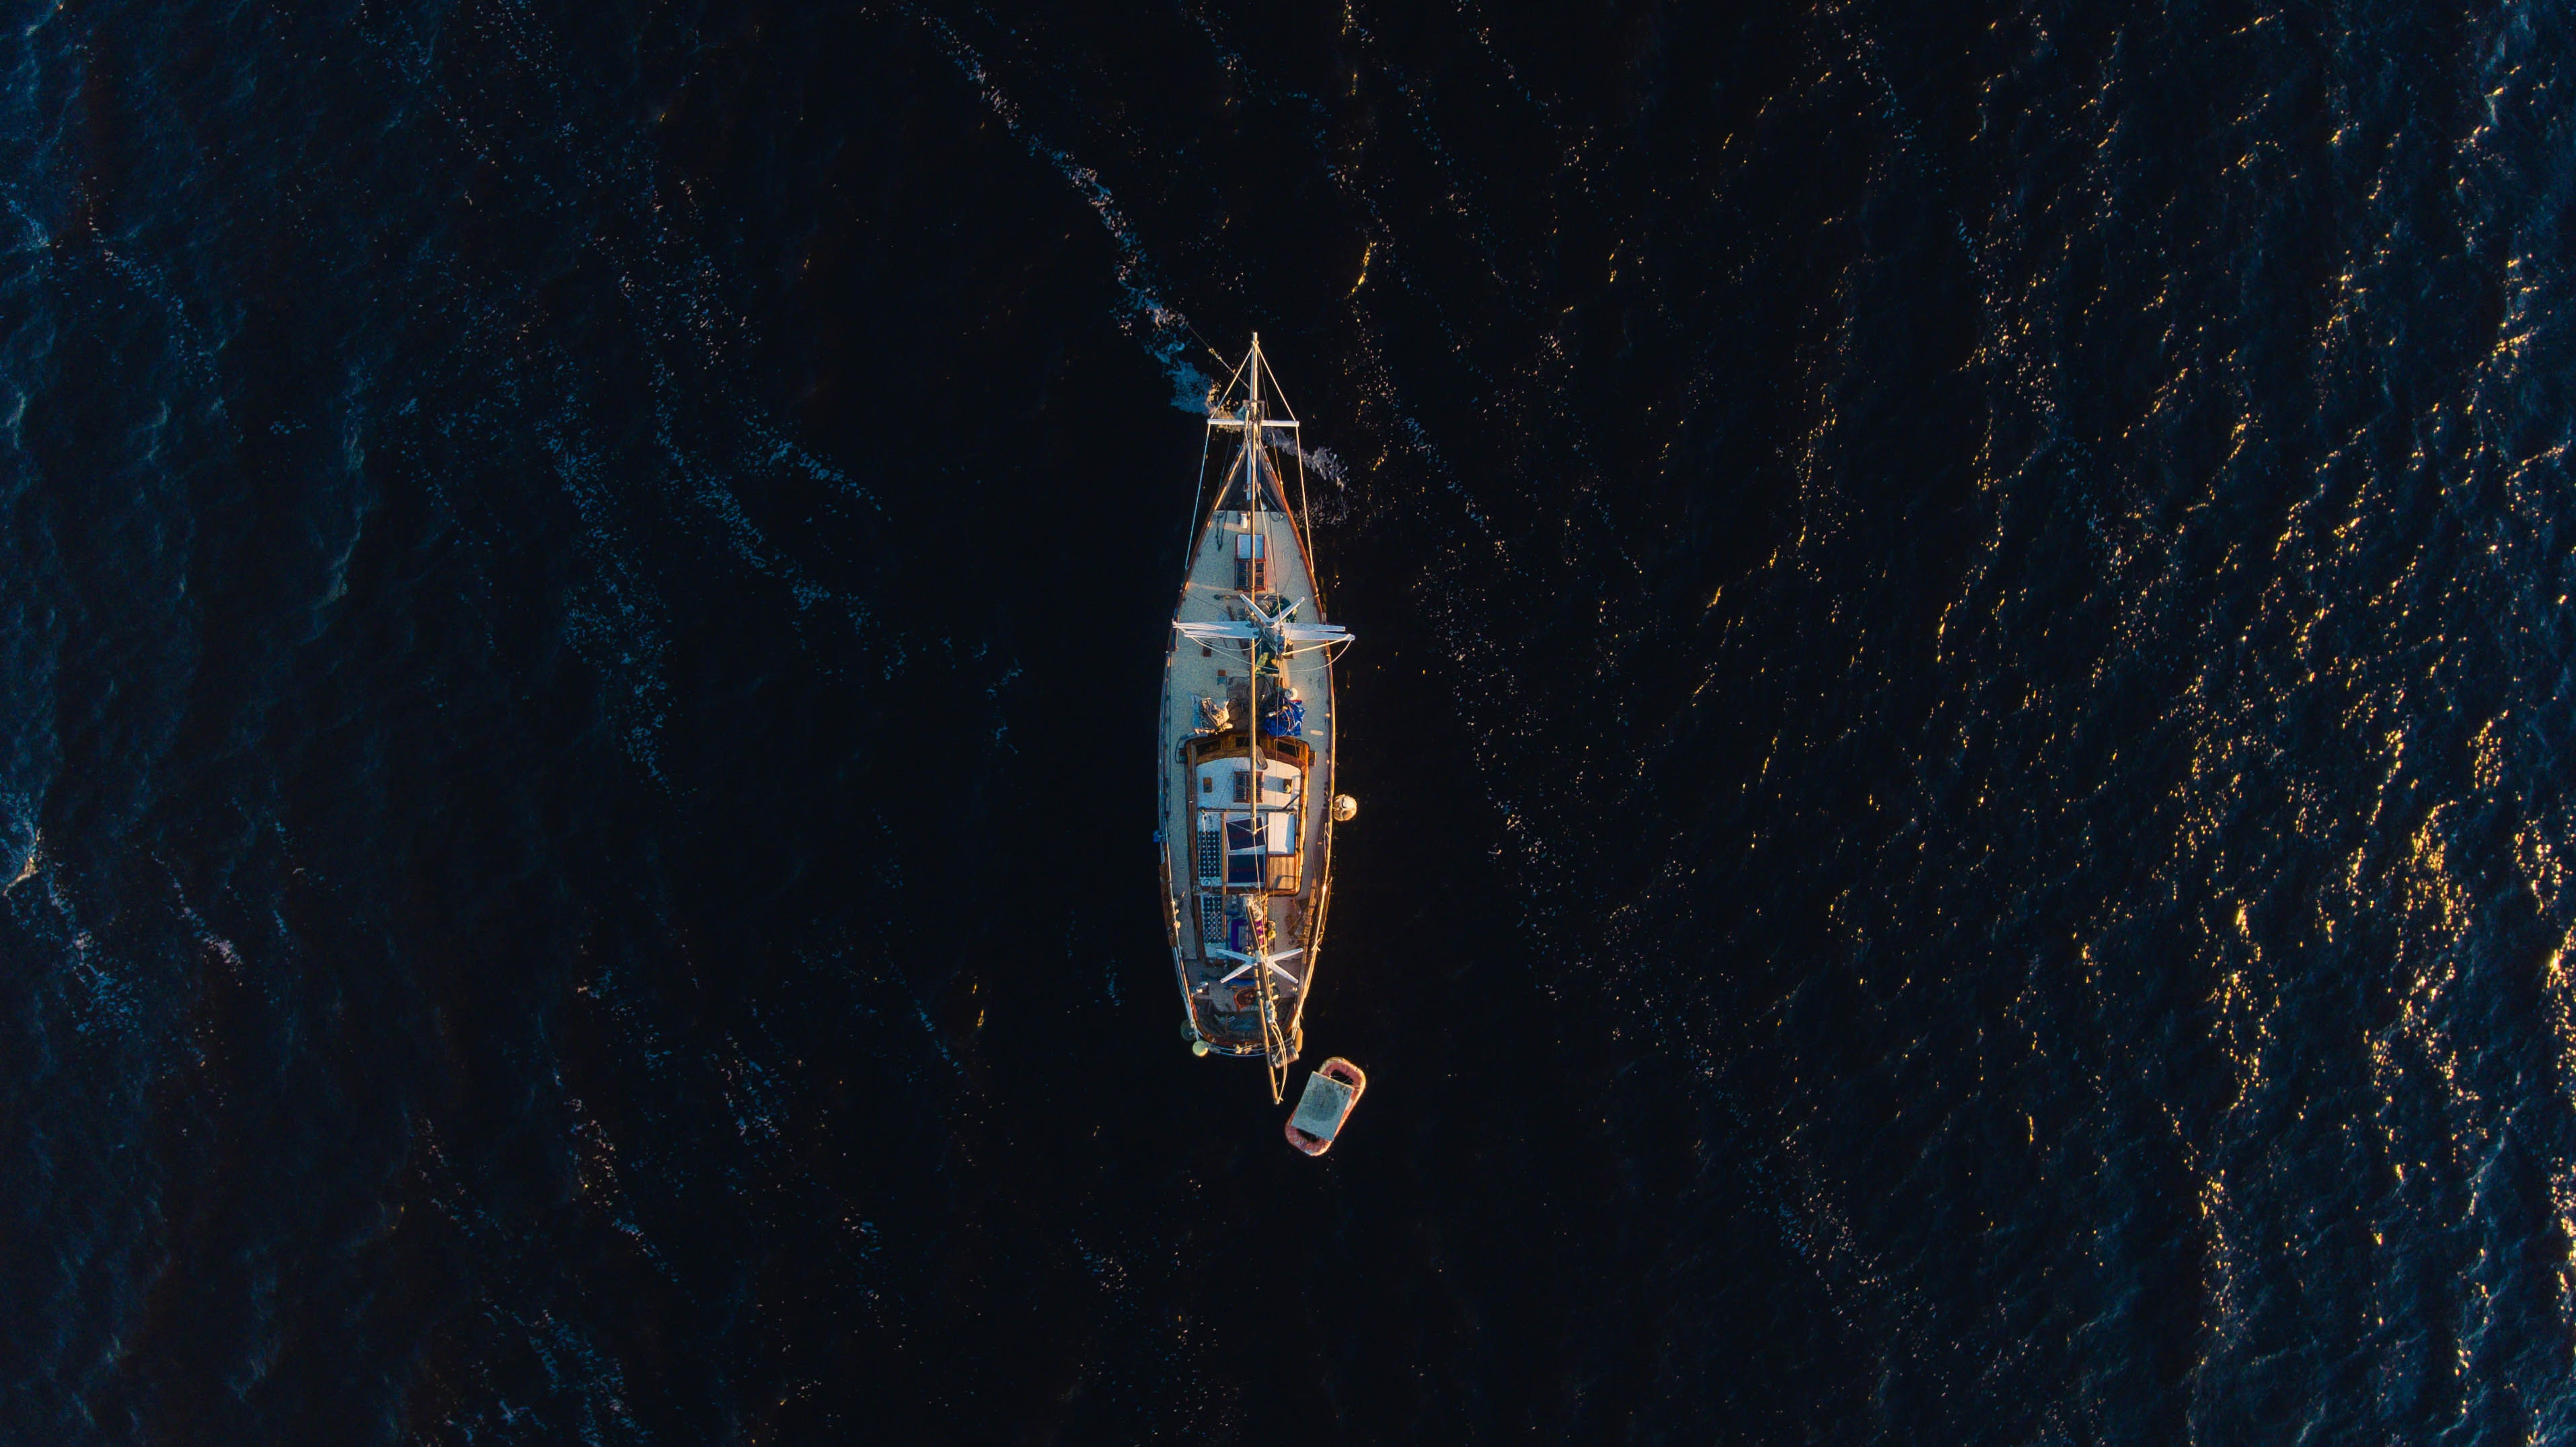 A drone shot of a boat in the ocean